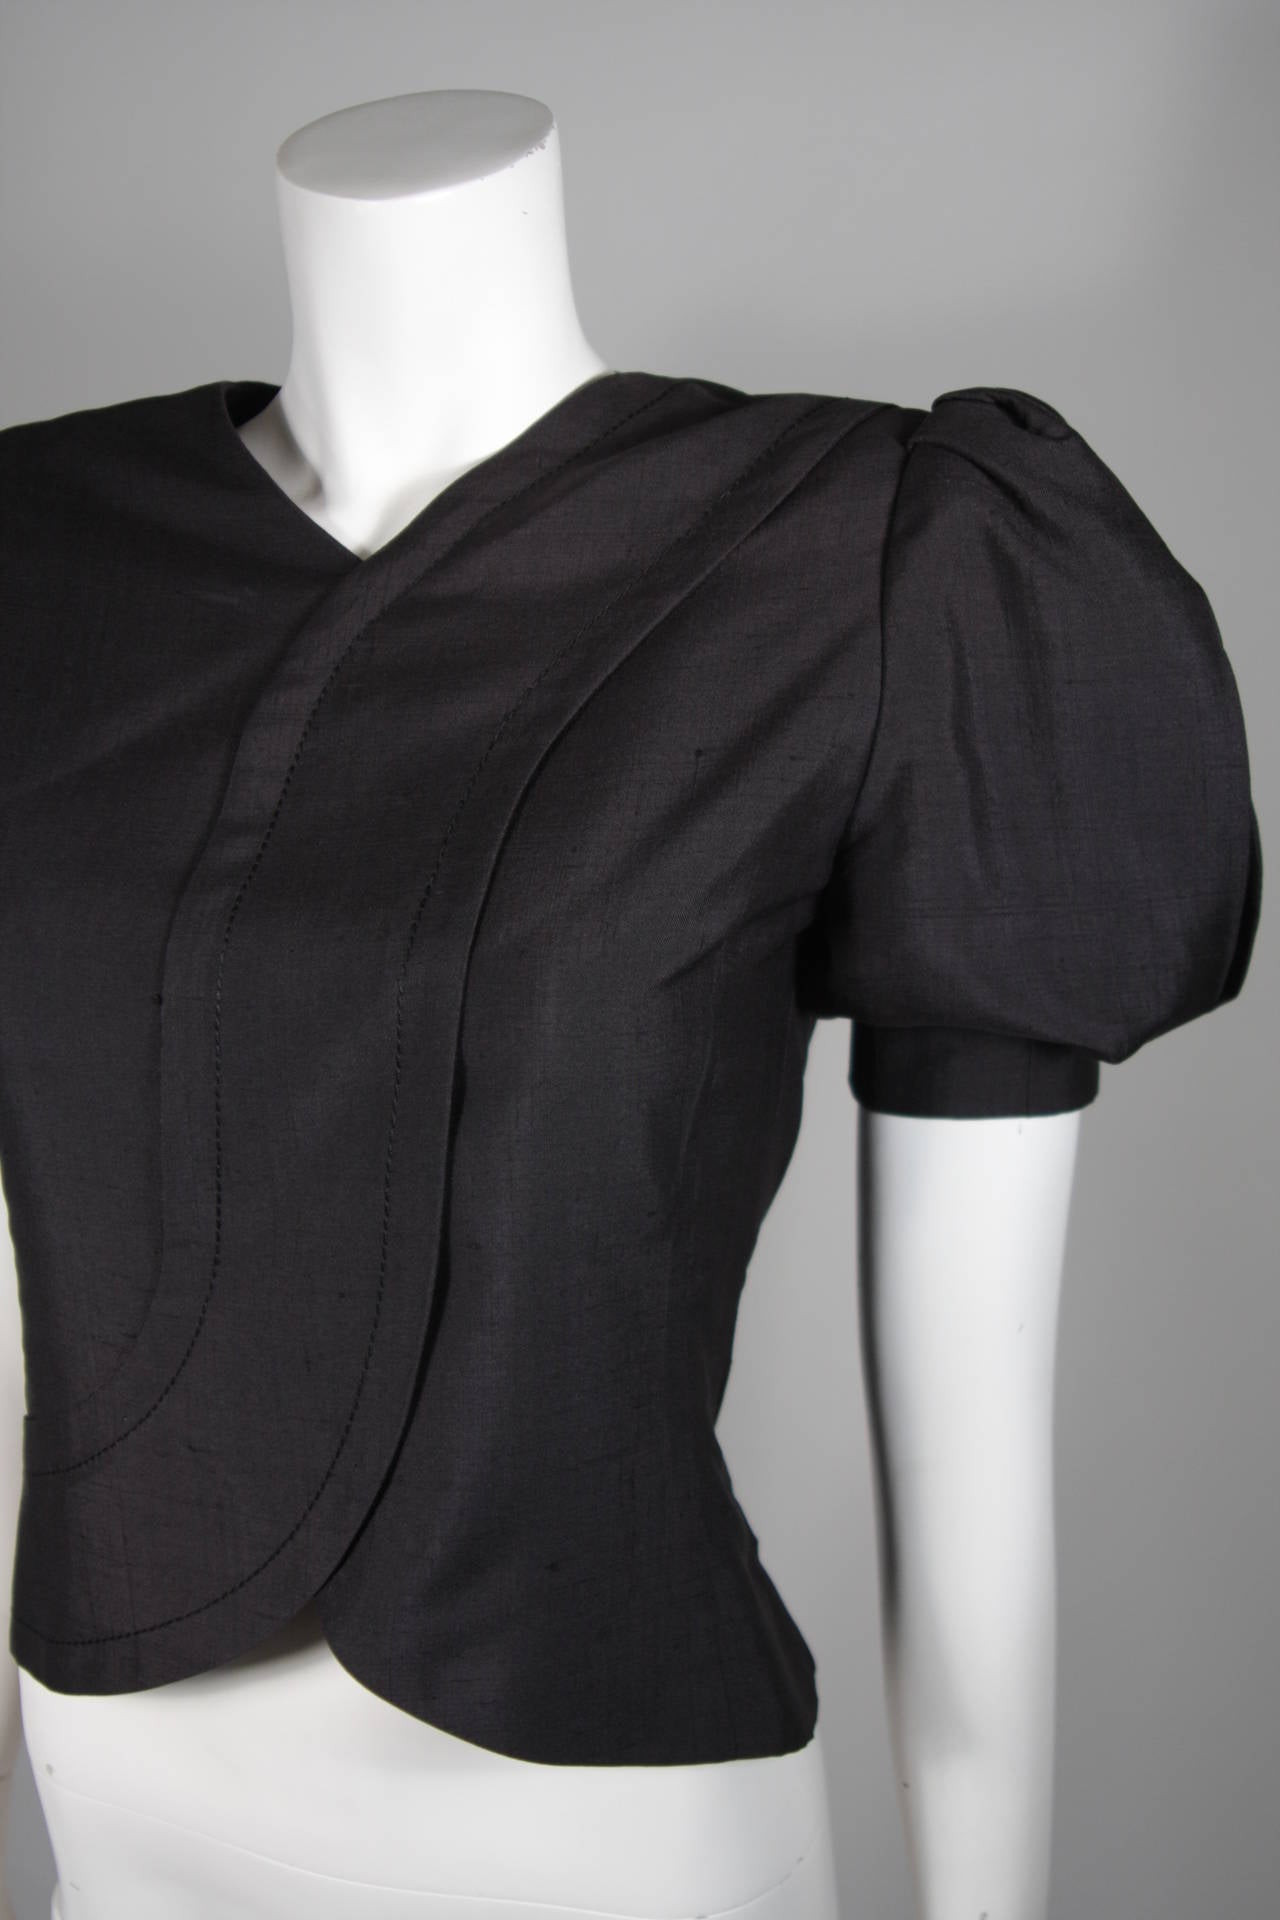 Galanos Black Silk Blouse with Puffed Sleeves Size Small In Excellent Condition For Sale In Los Angeles, CA